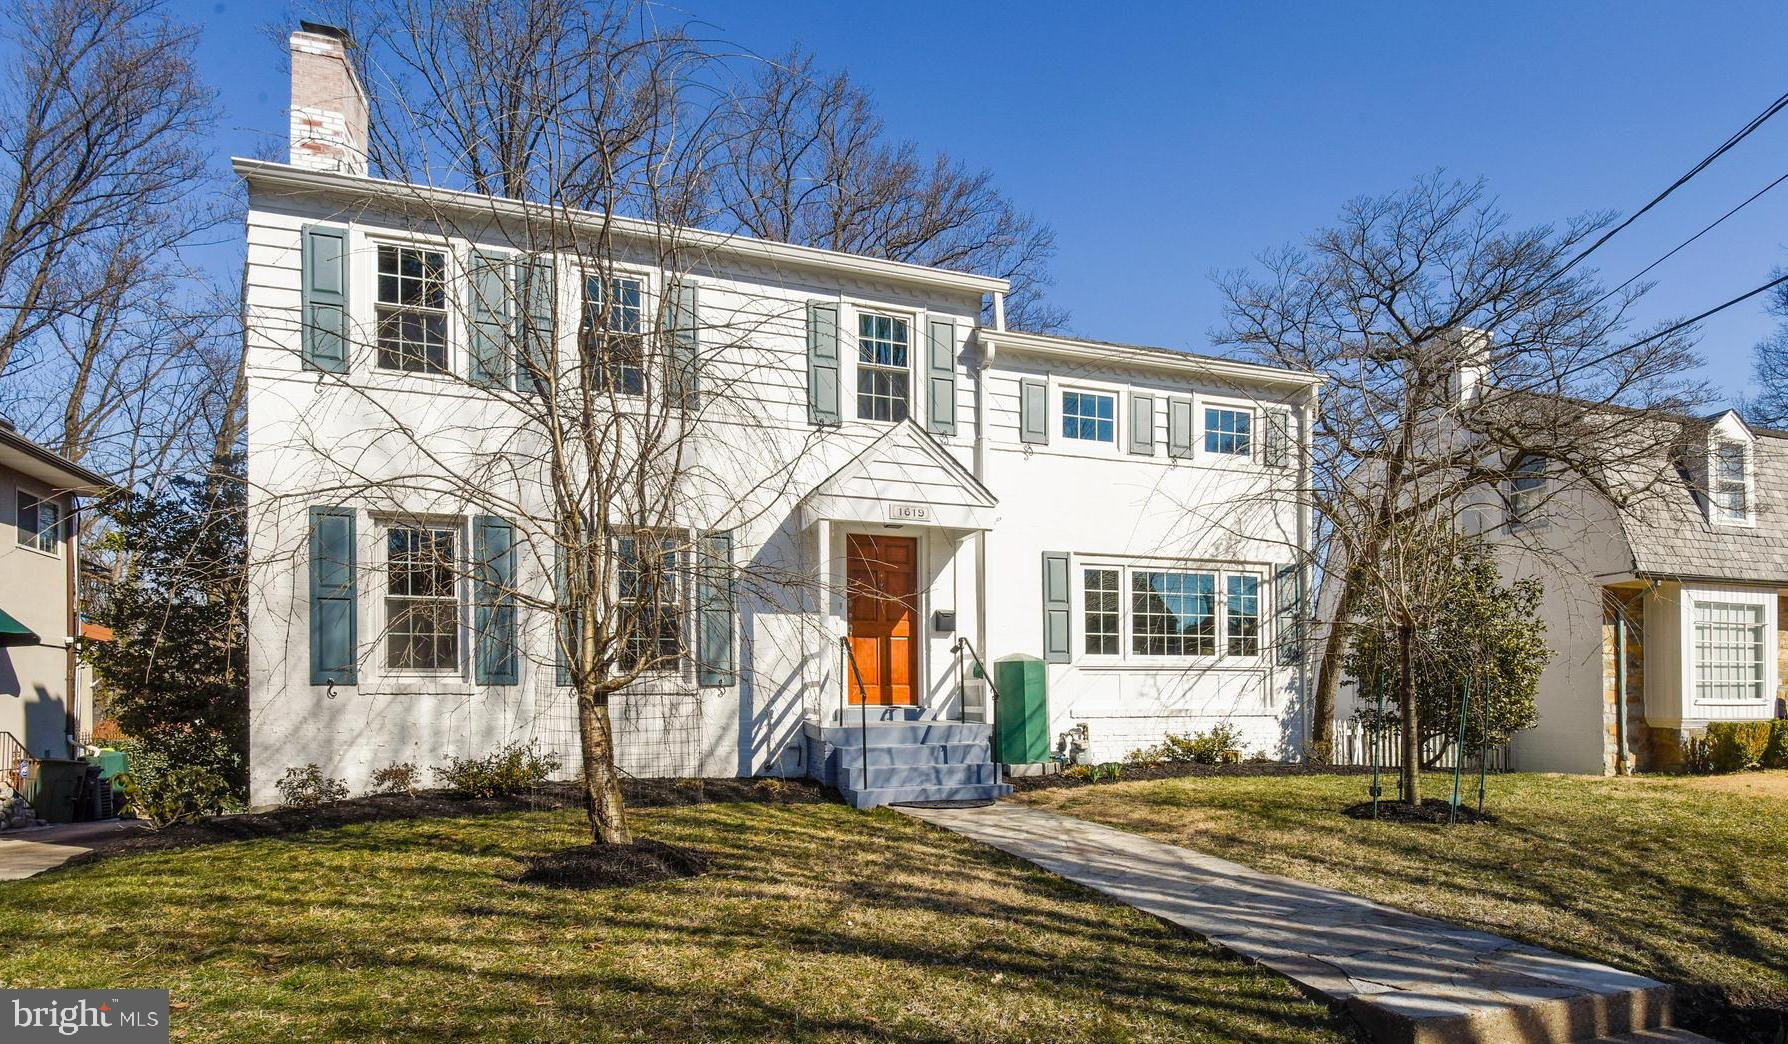 1619 ROXANNA ROAD NW, WASHINGTON, DC 20012